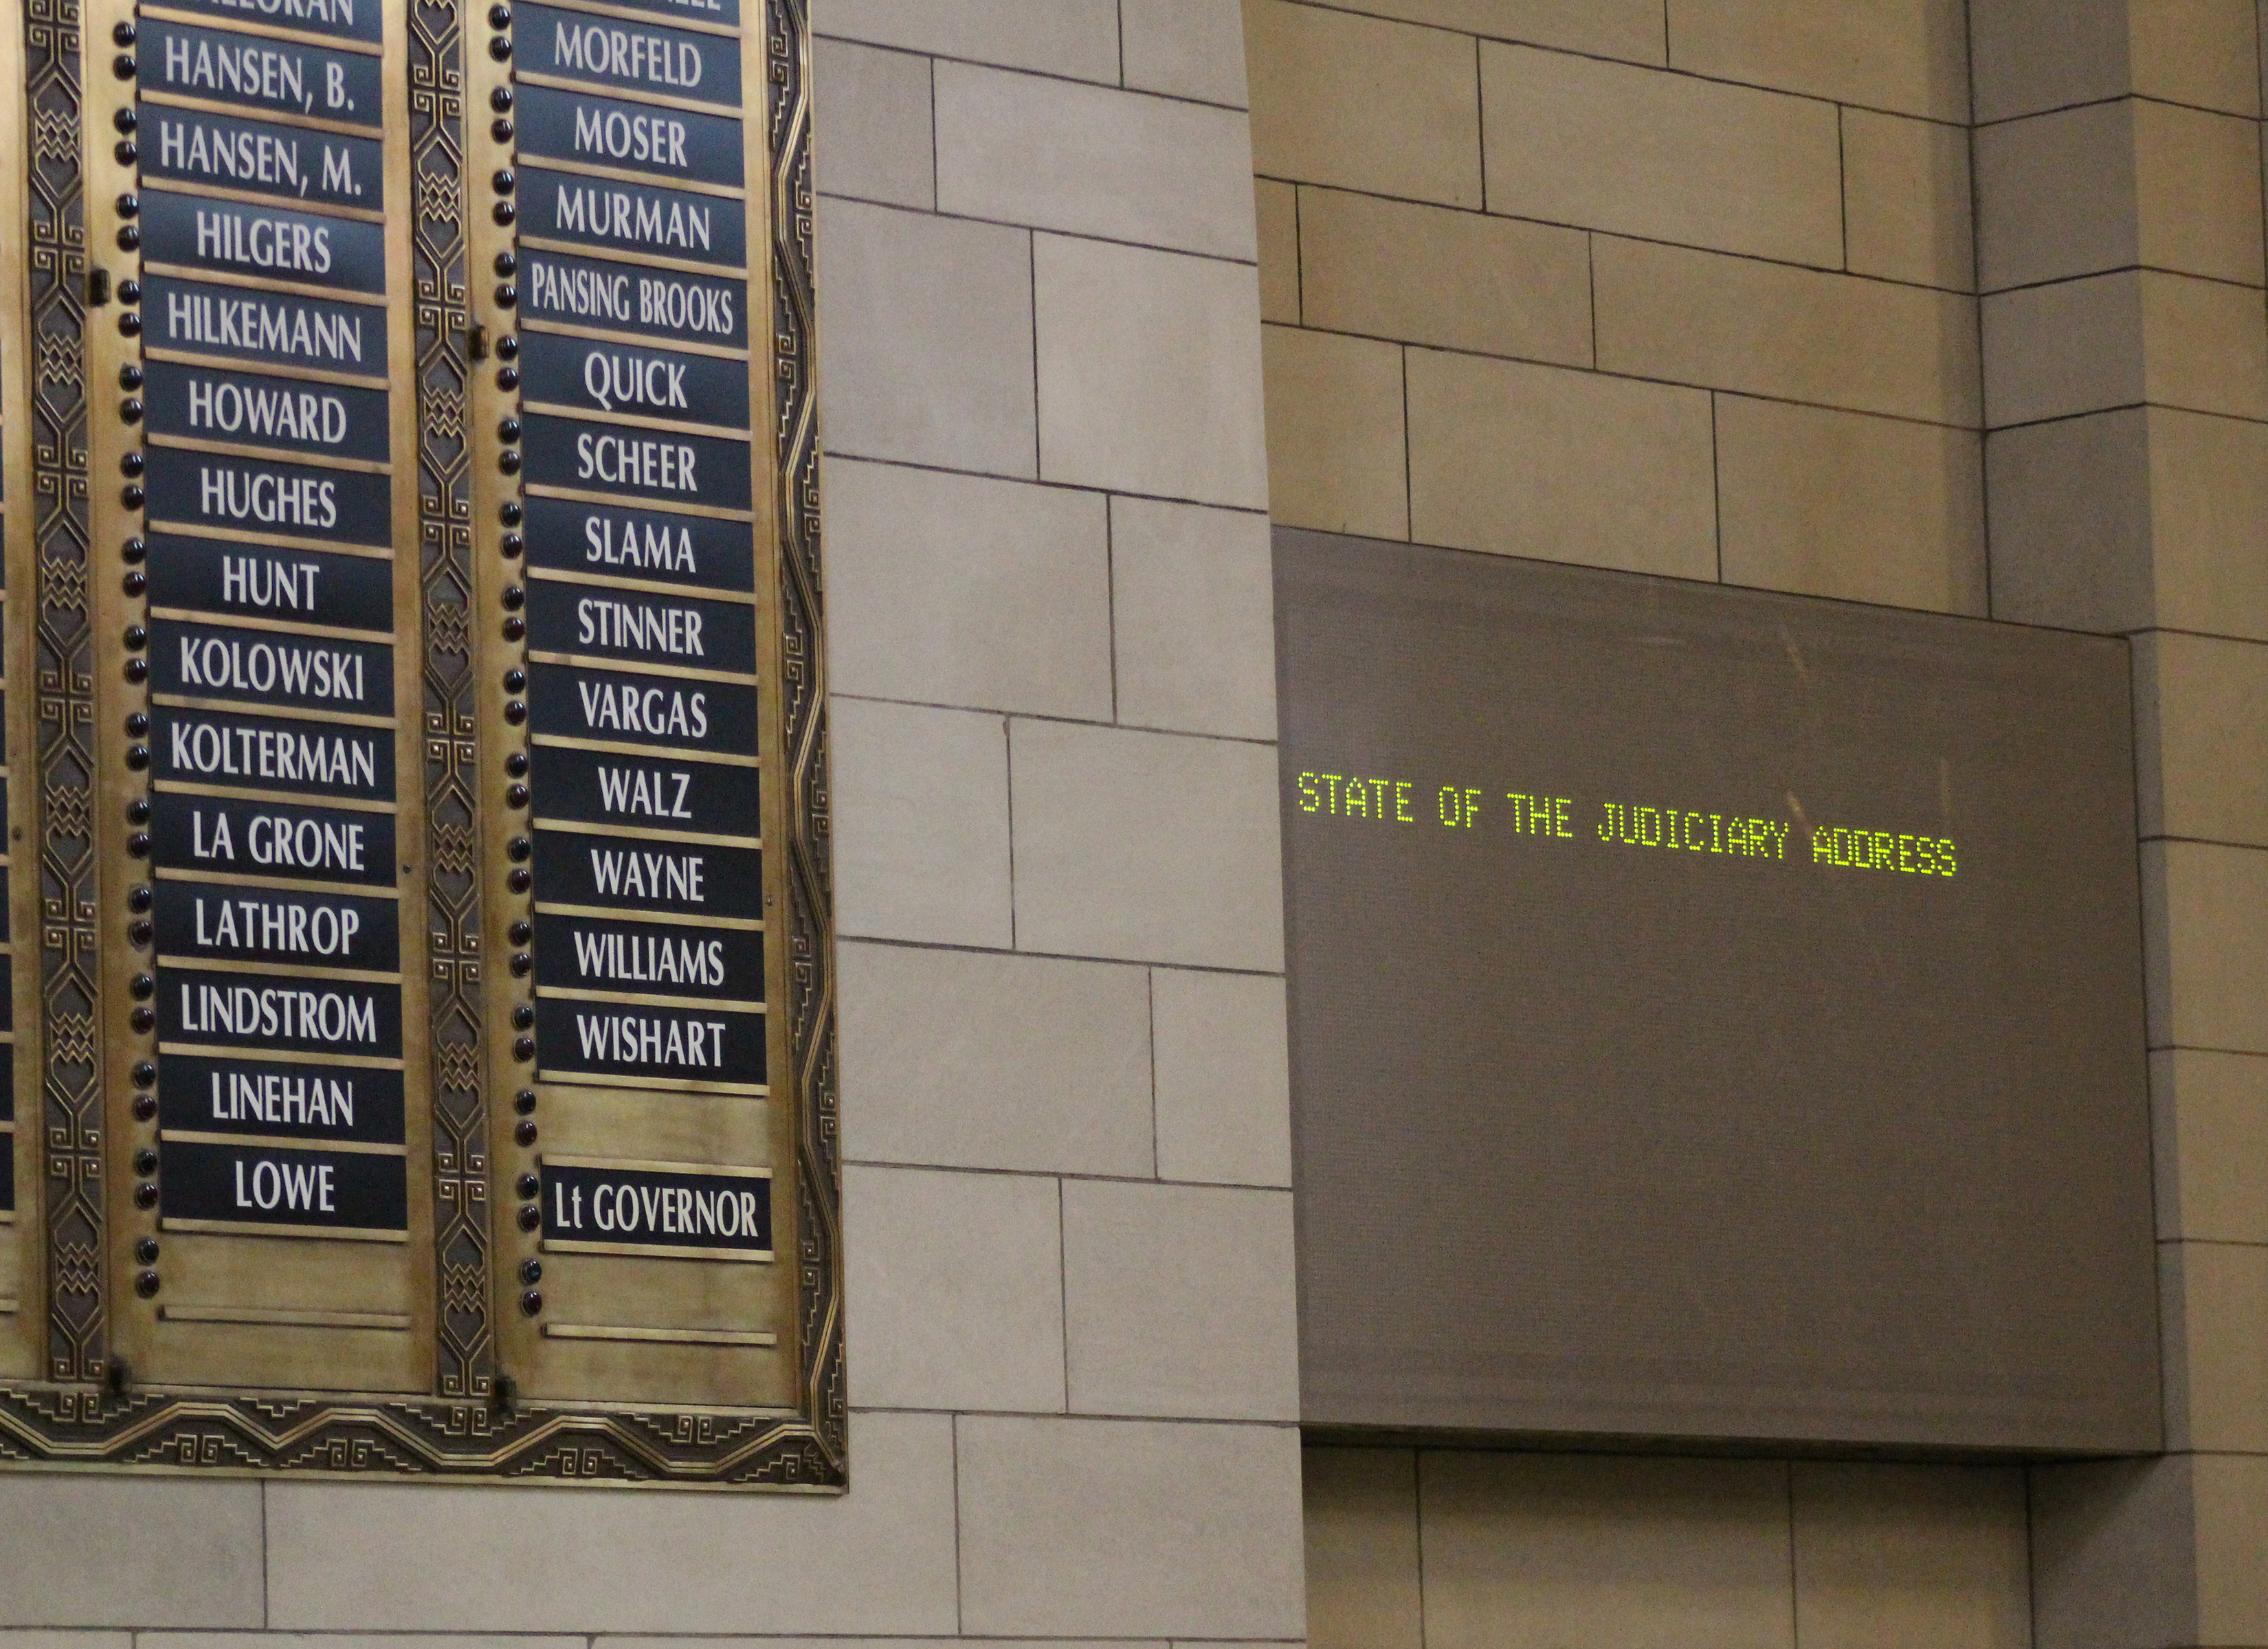 The State of the Judiciary address was presented lawmakers at the Nebraska Legislature on Wednesday, Jan. 22, 2020. (Photo by Scott Stewart)